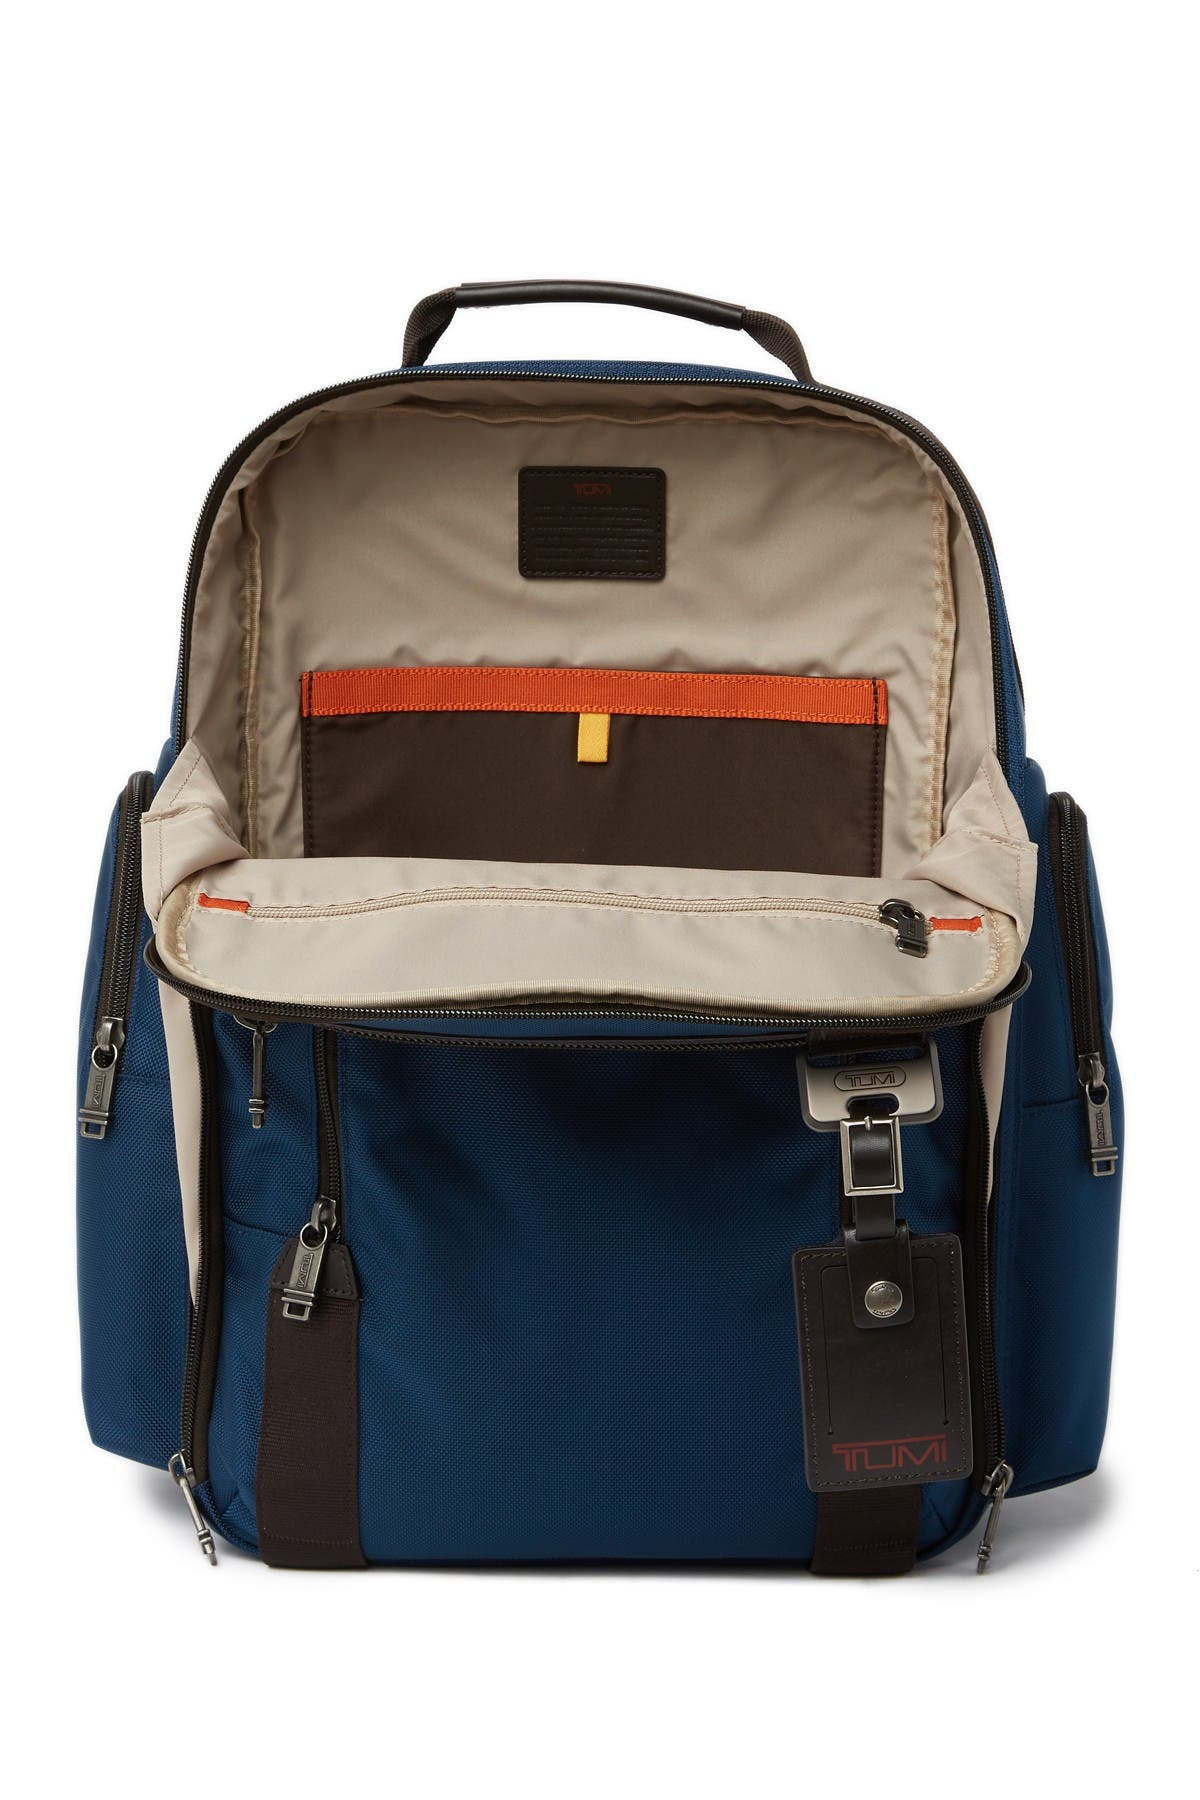 Image of Tumi Gilman Brief Pack